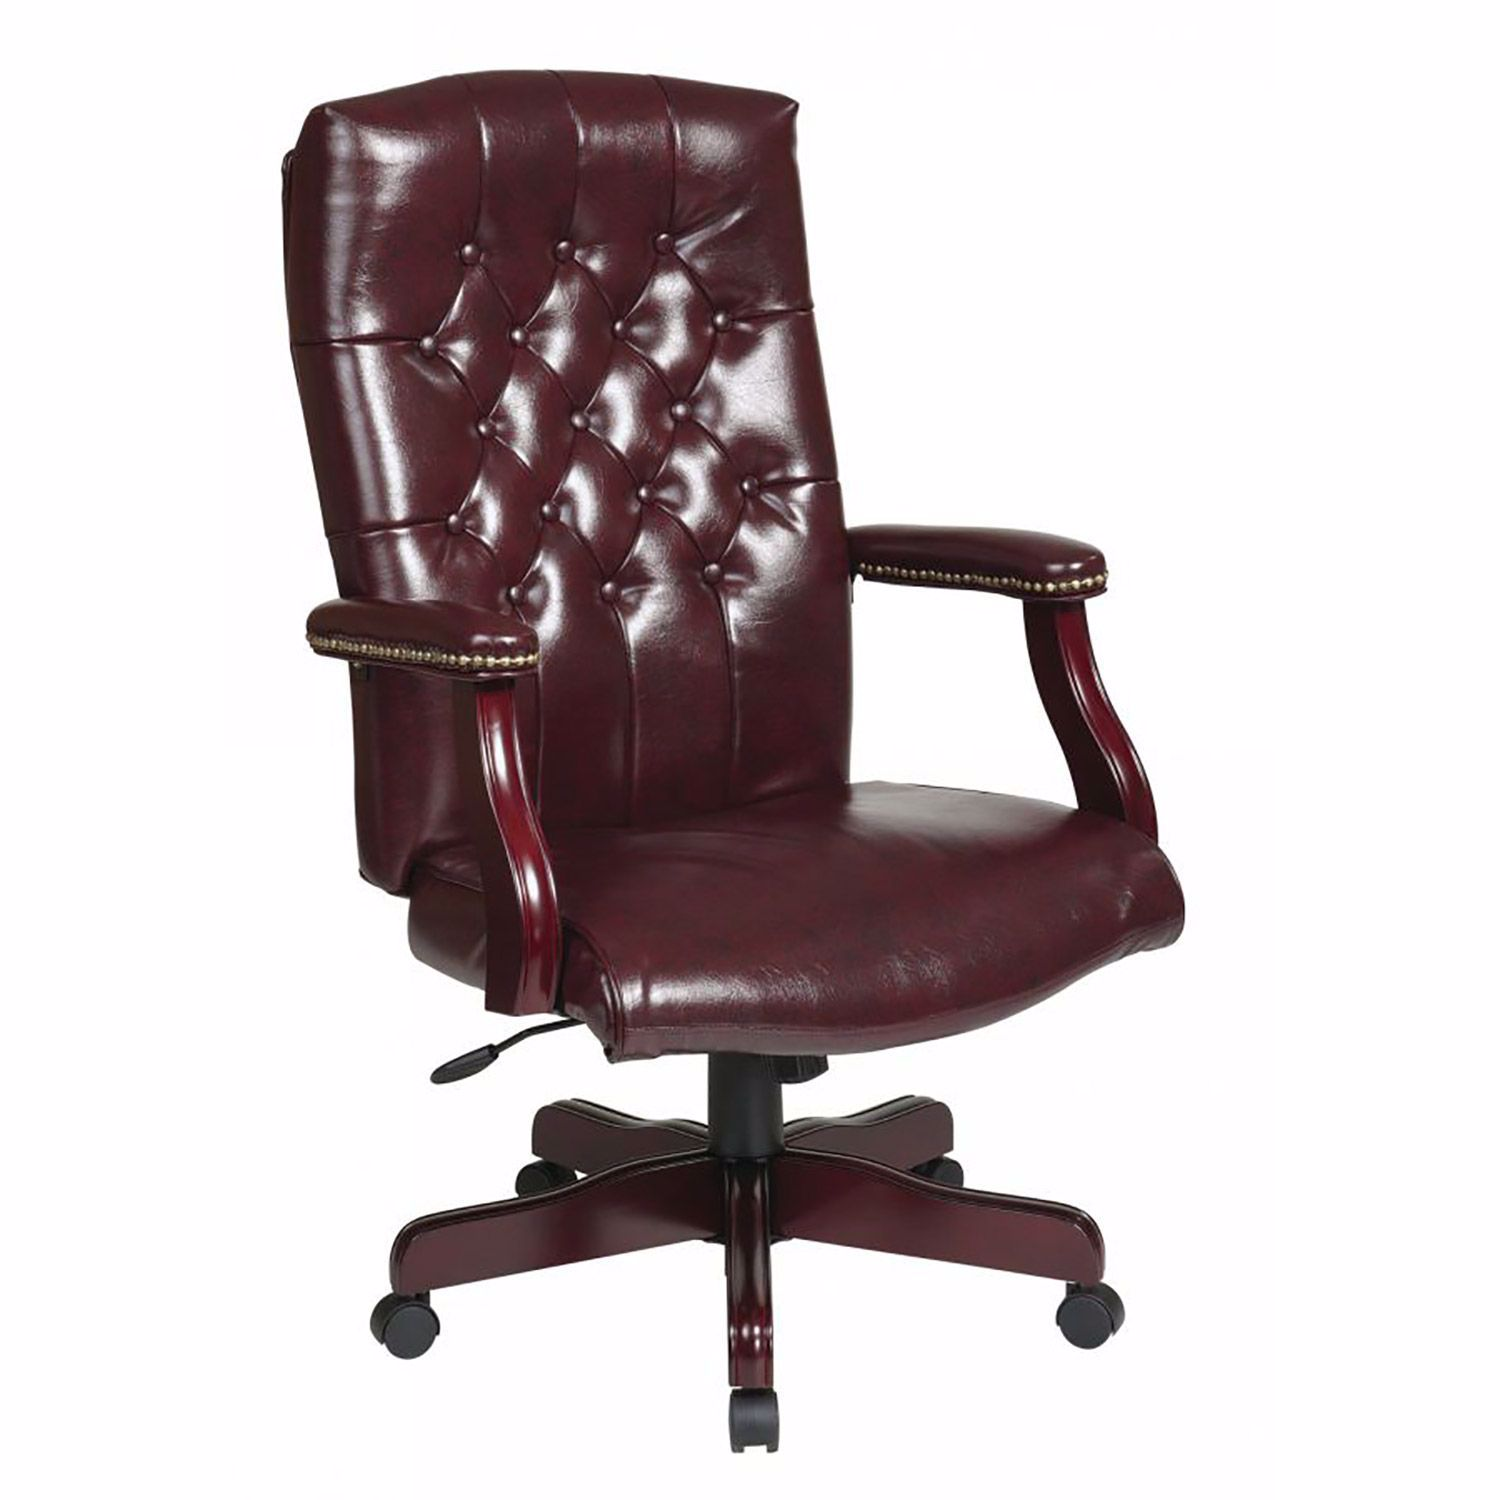 Brown Traditional Office Chair TEX433-JT43  Office Star  AFW.com